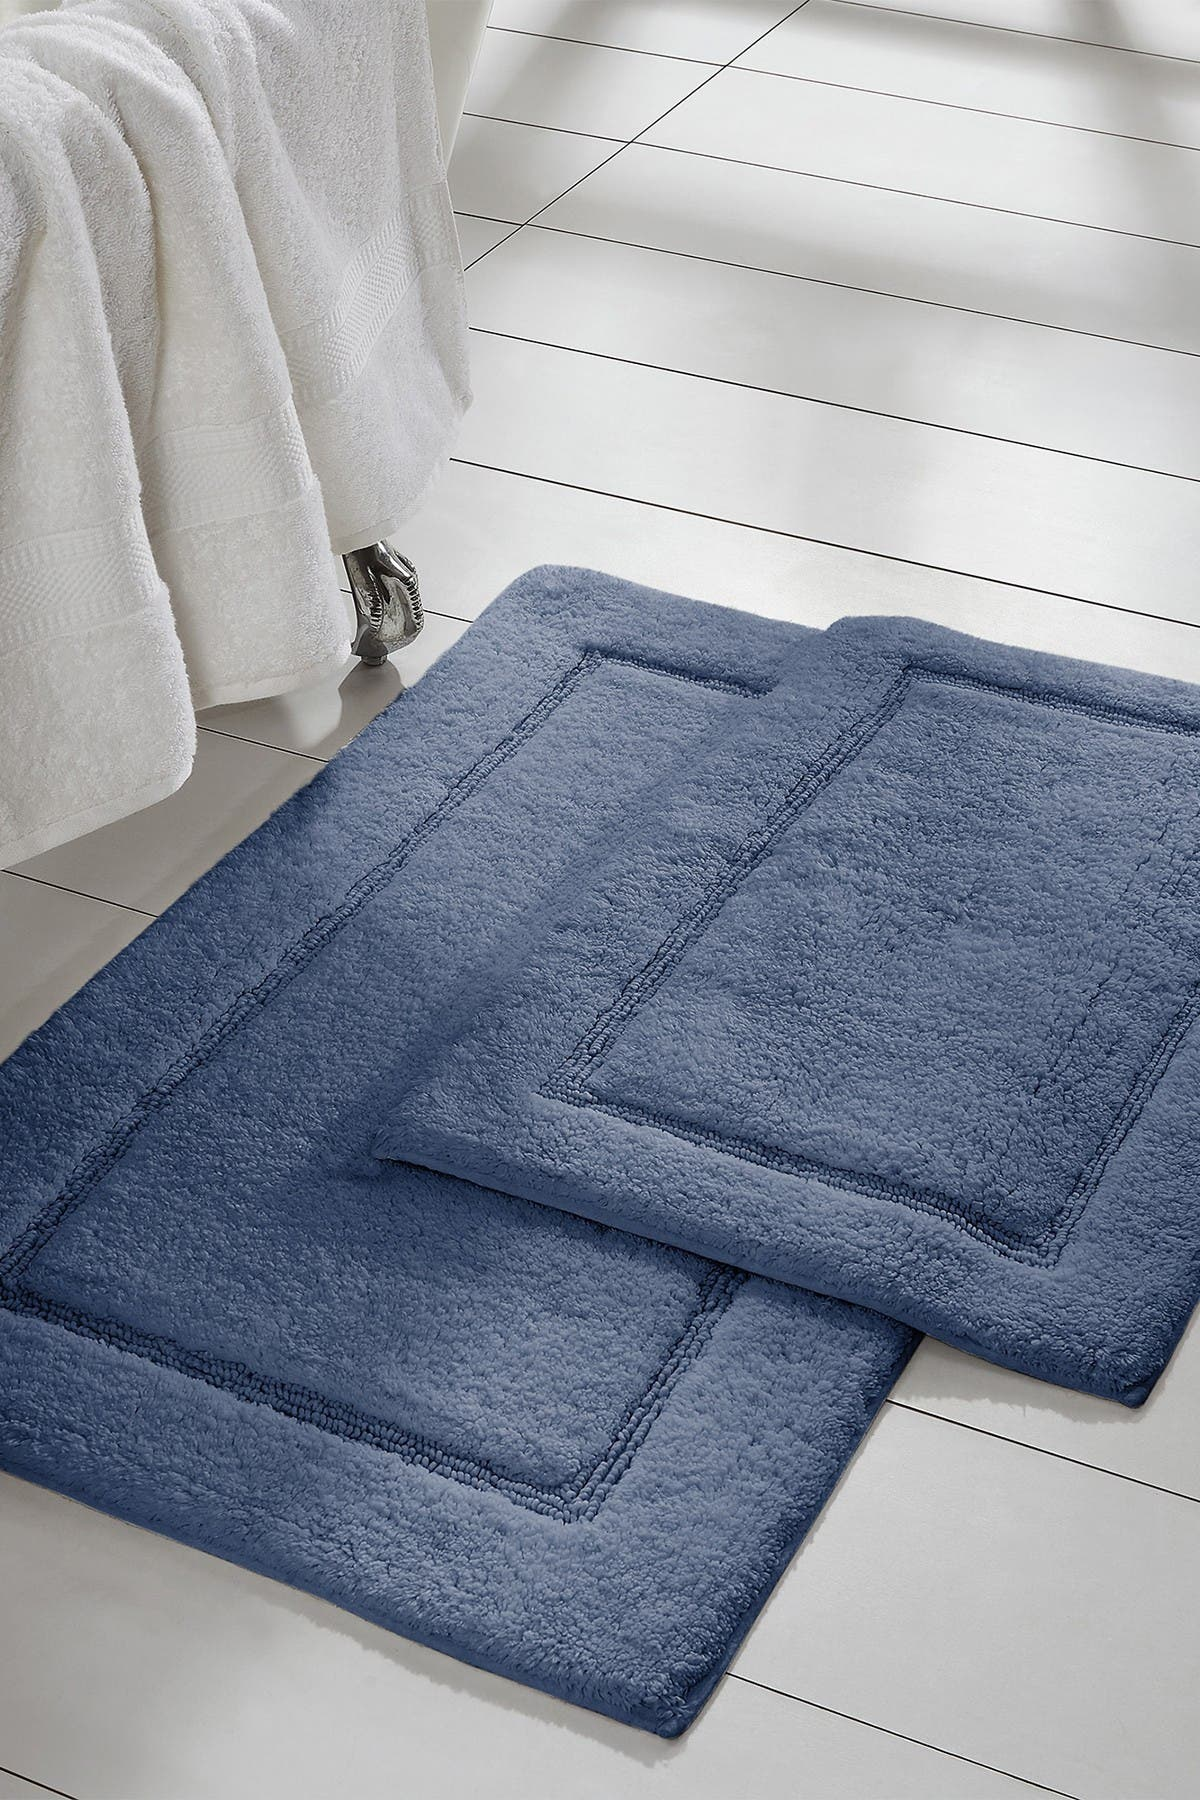 Image of Modern Threads Denim Solid Loop Non-Slip Bath Mat 2-Piece Set